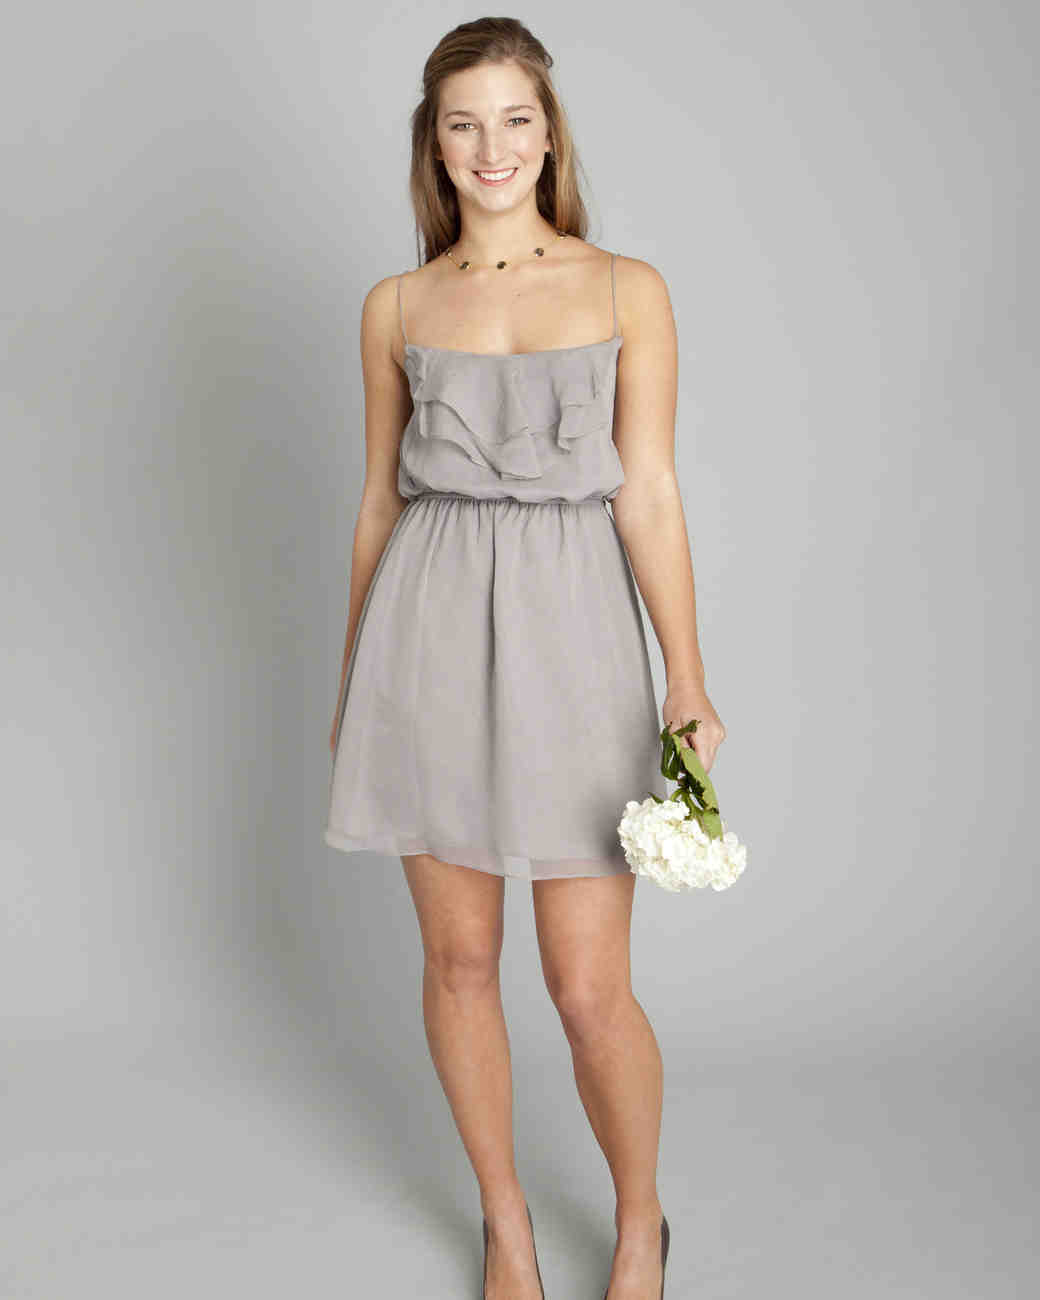 Bridesmaid dresses for beach weddings martha stewart weddings coren moore junglespirit